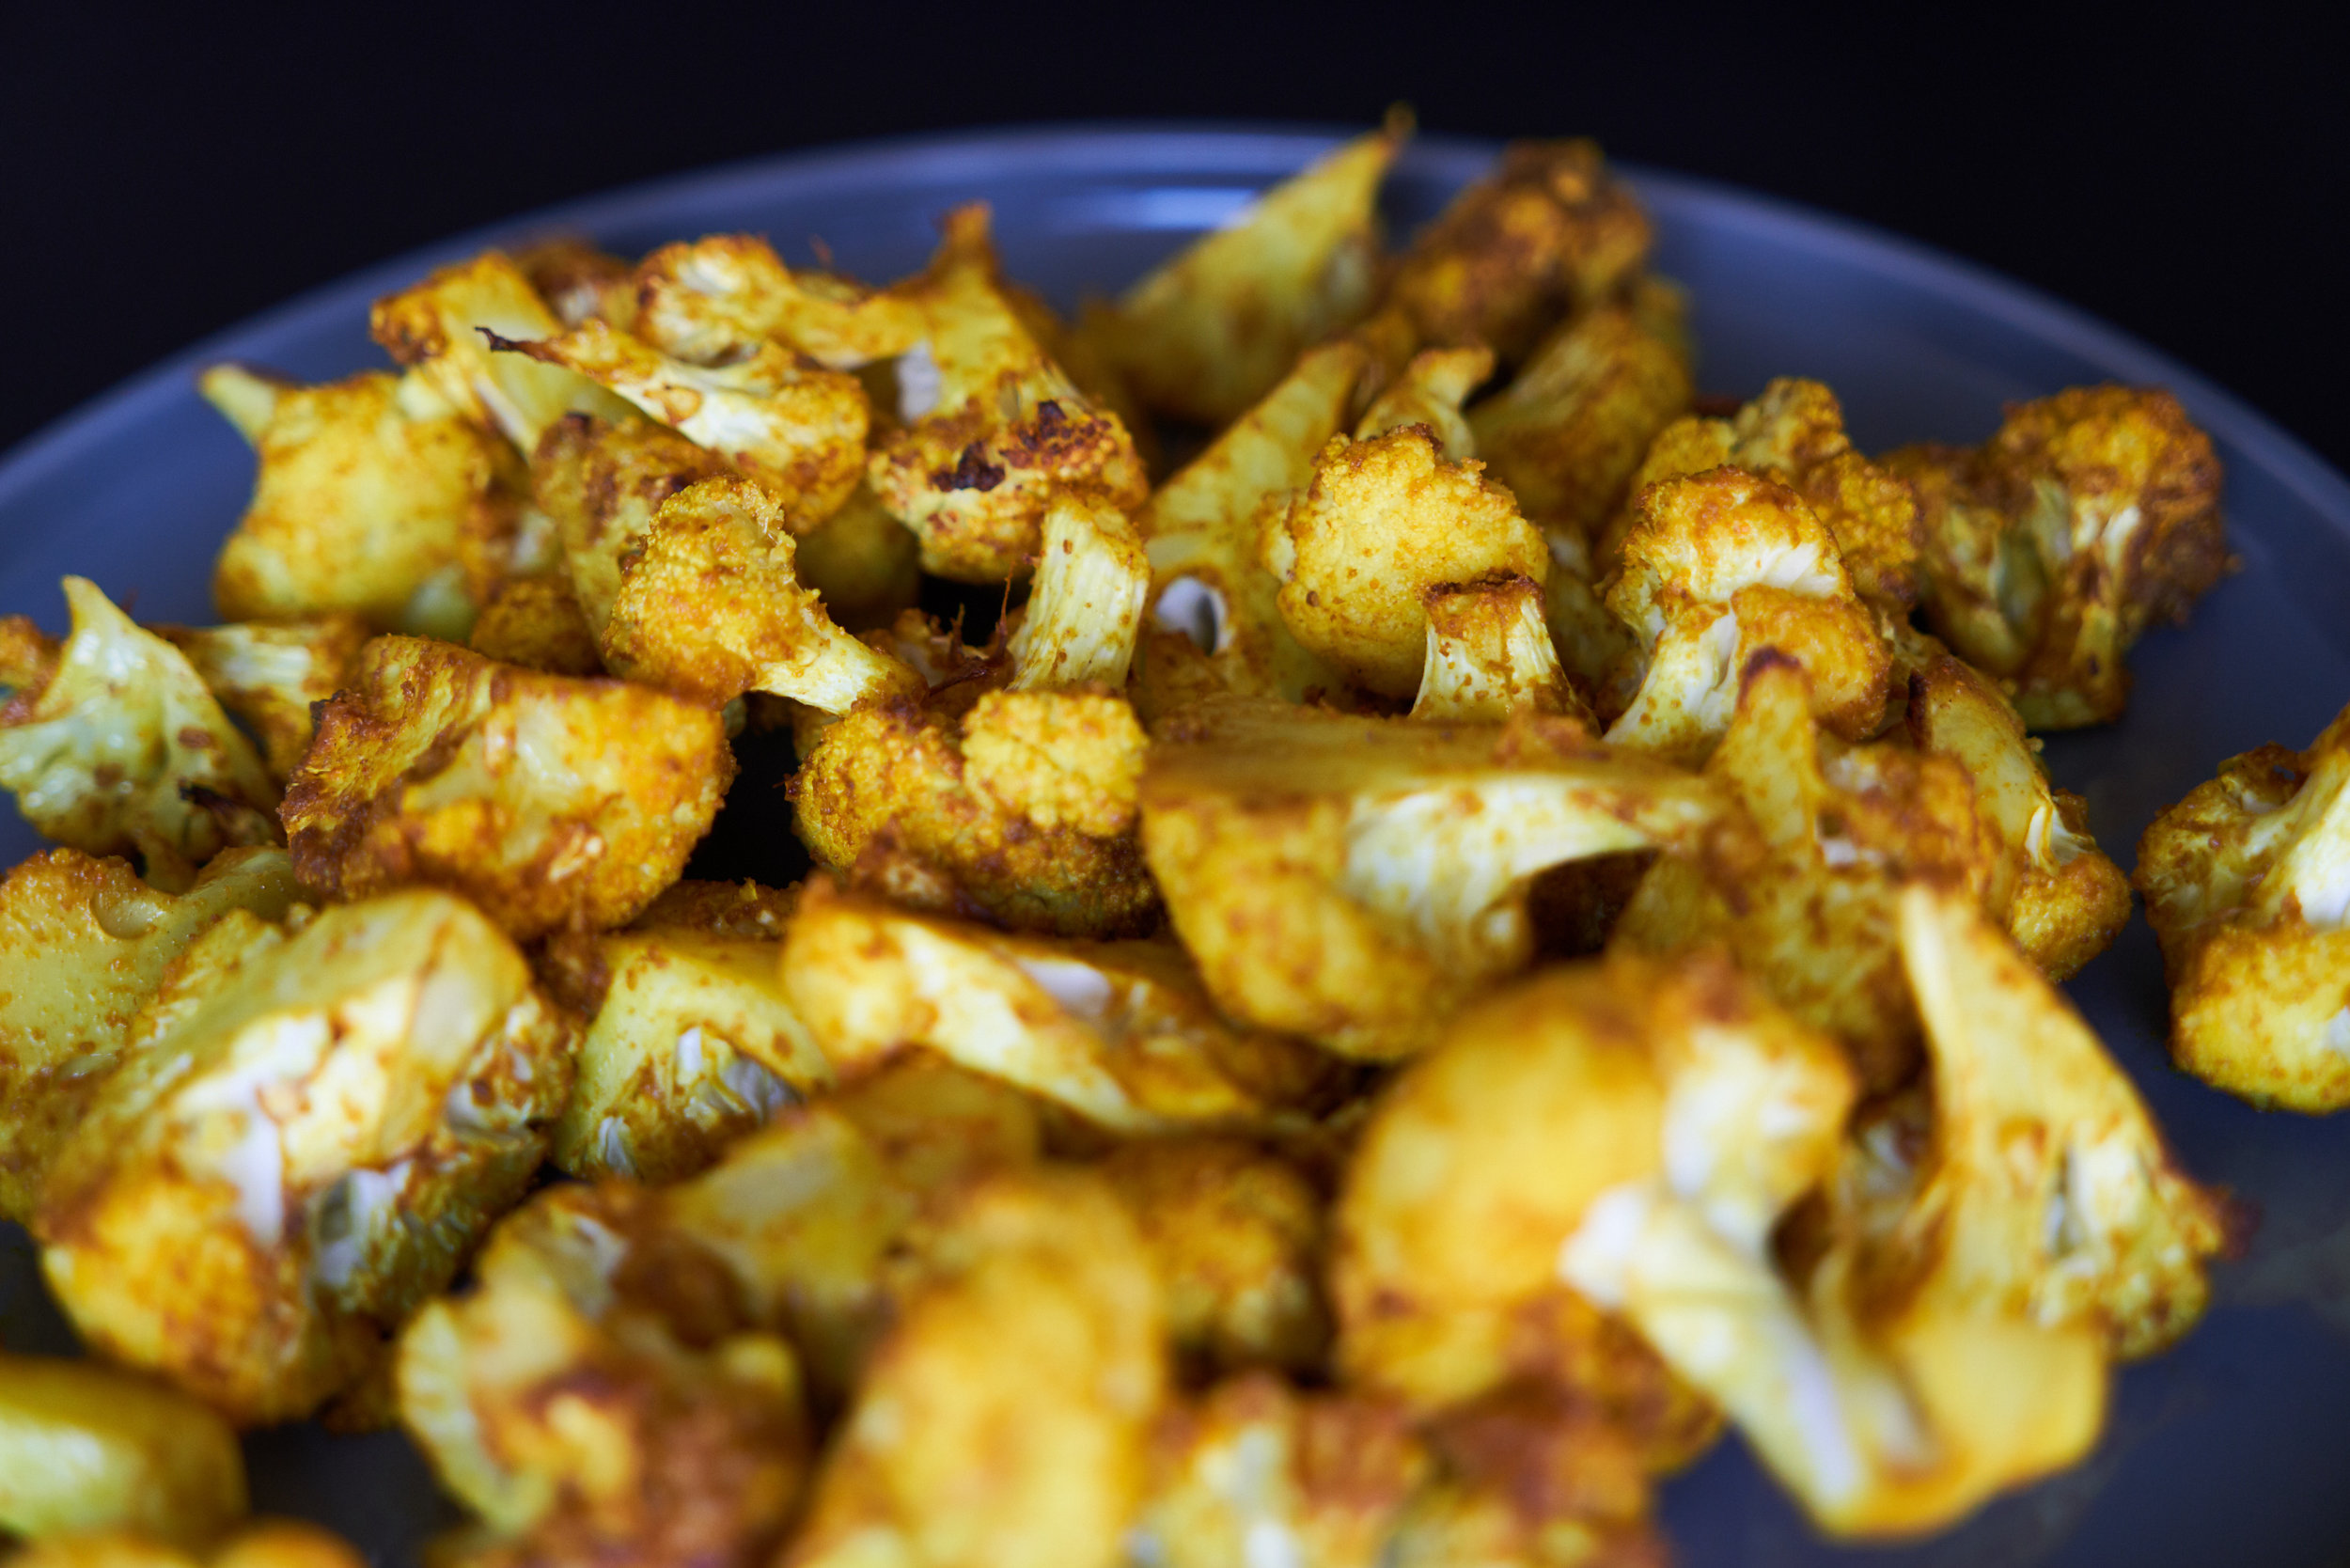 Roasted Cauliflower with Turmeric, Pomegranate and Mint - cauliflower after roasting | In Carina's Kitchen